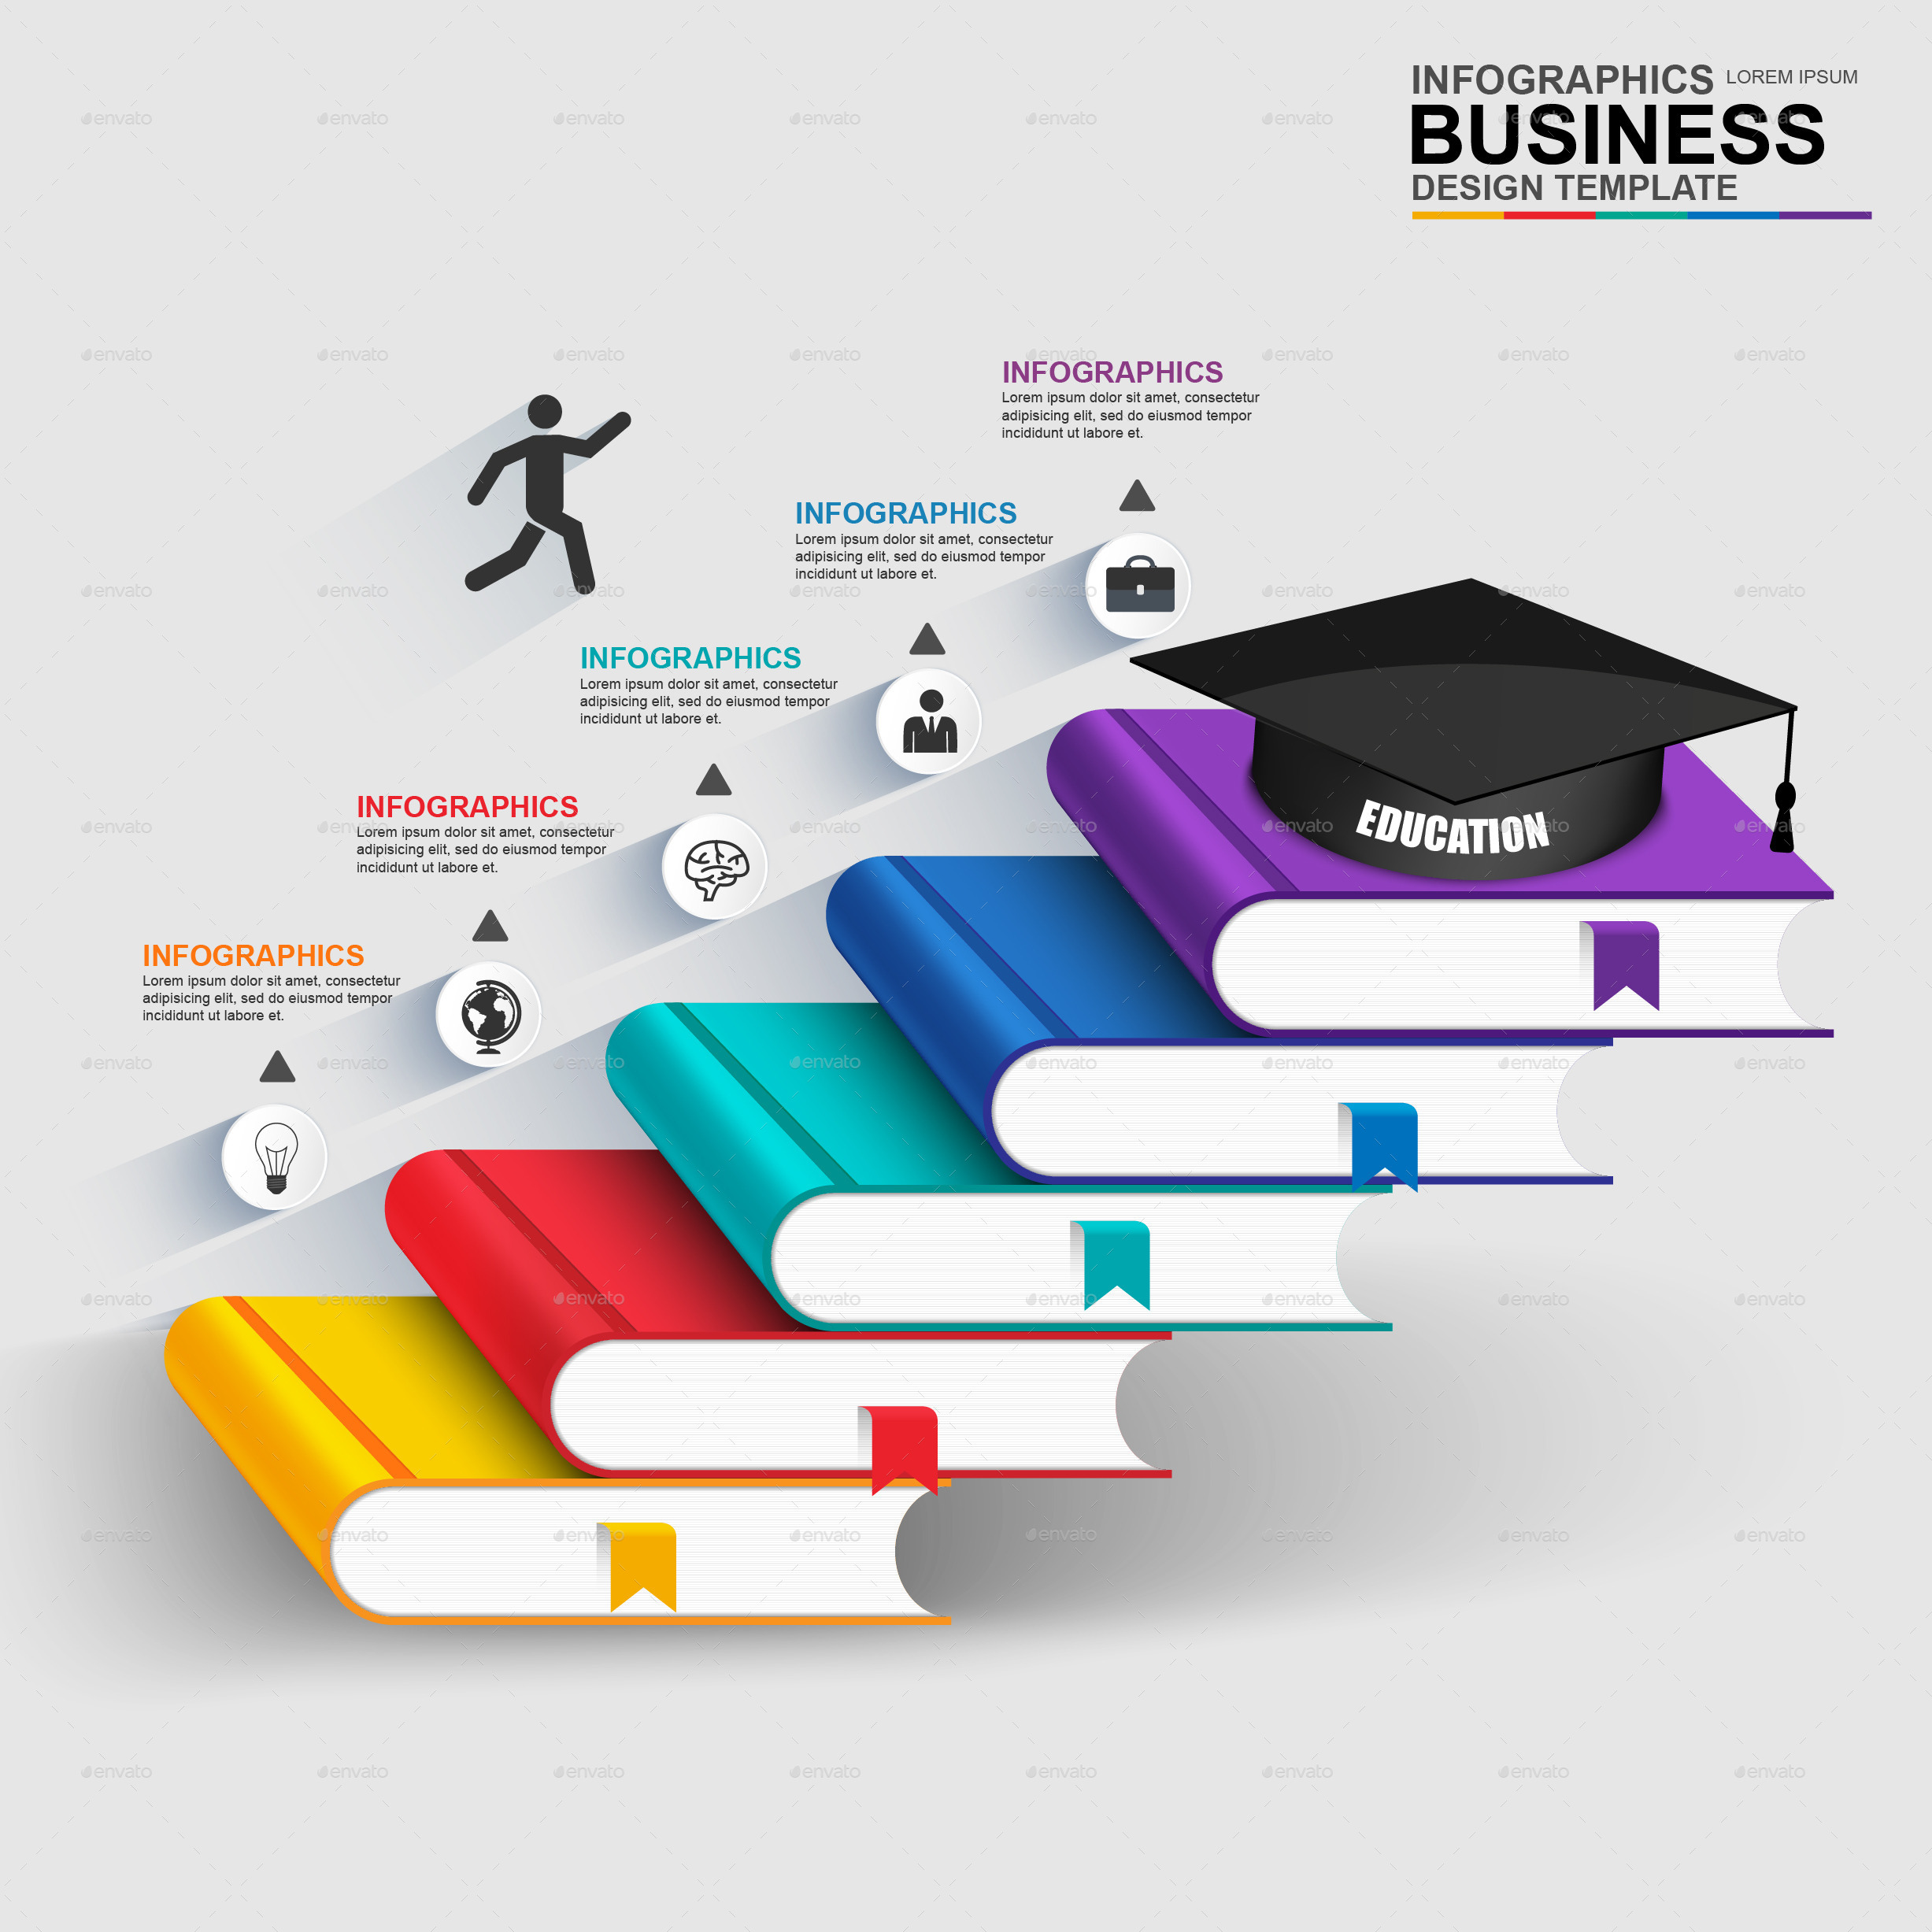 Abstract 3d Digital Business Education Infographic By Alexdndz Graphicriver